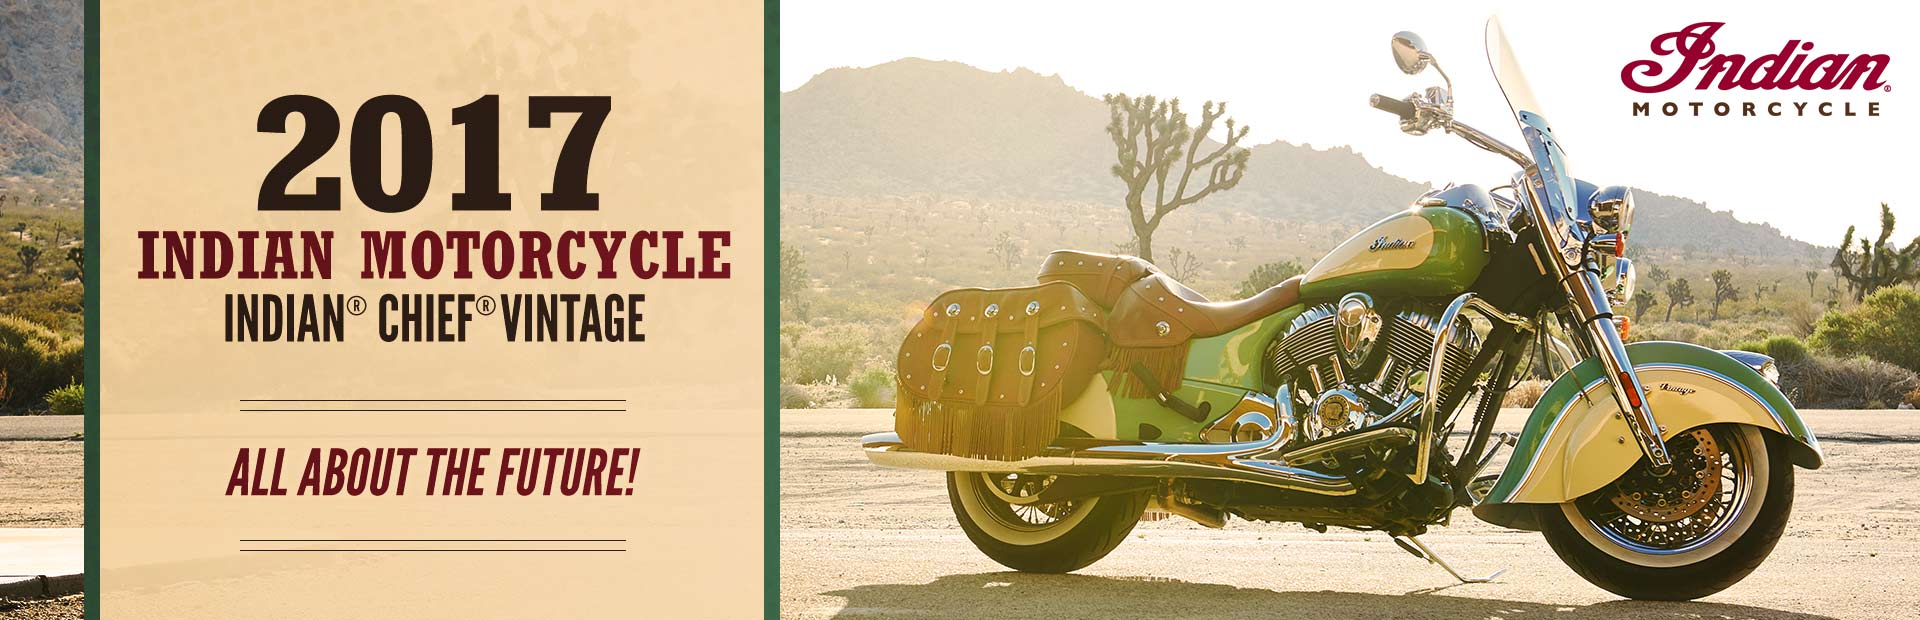 2017 Indian Motorcycle Indian® Chief® Vintage: Click here to view the model.